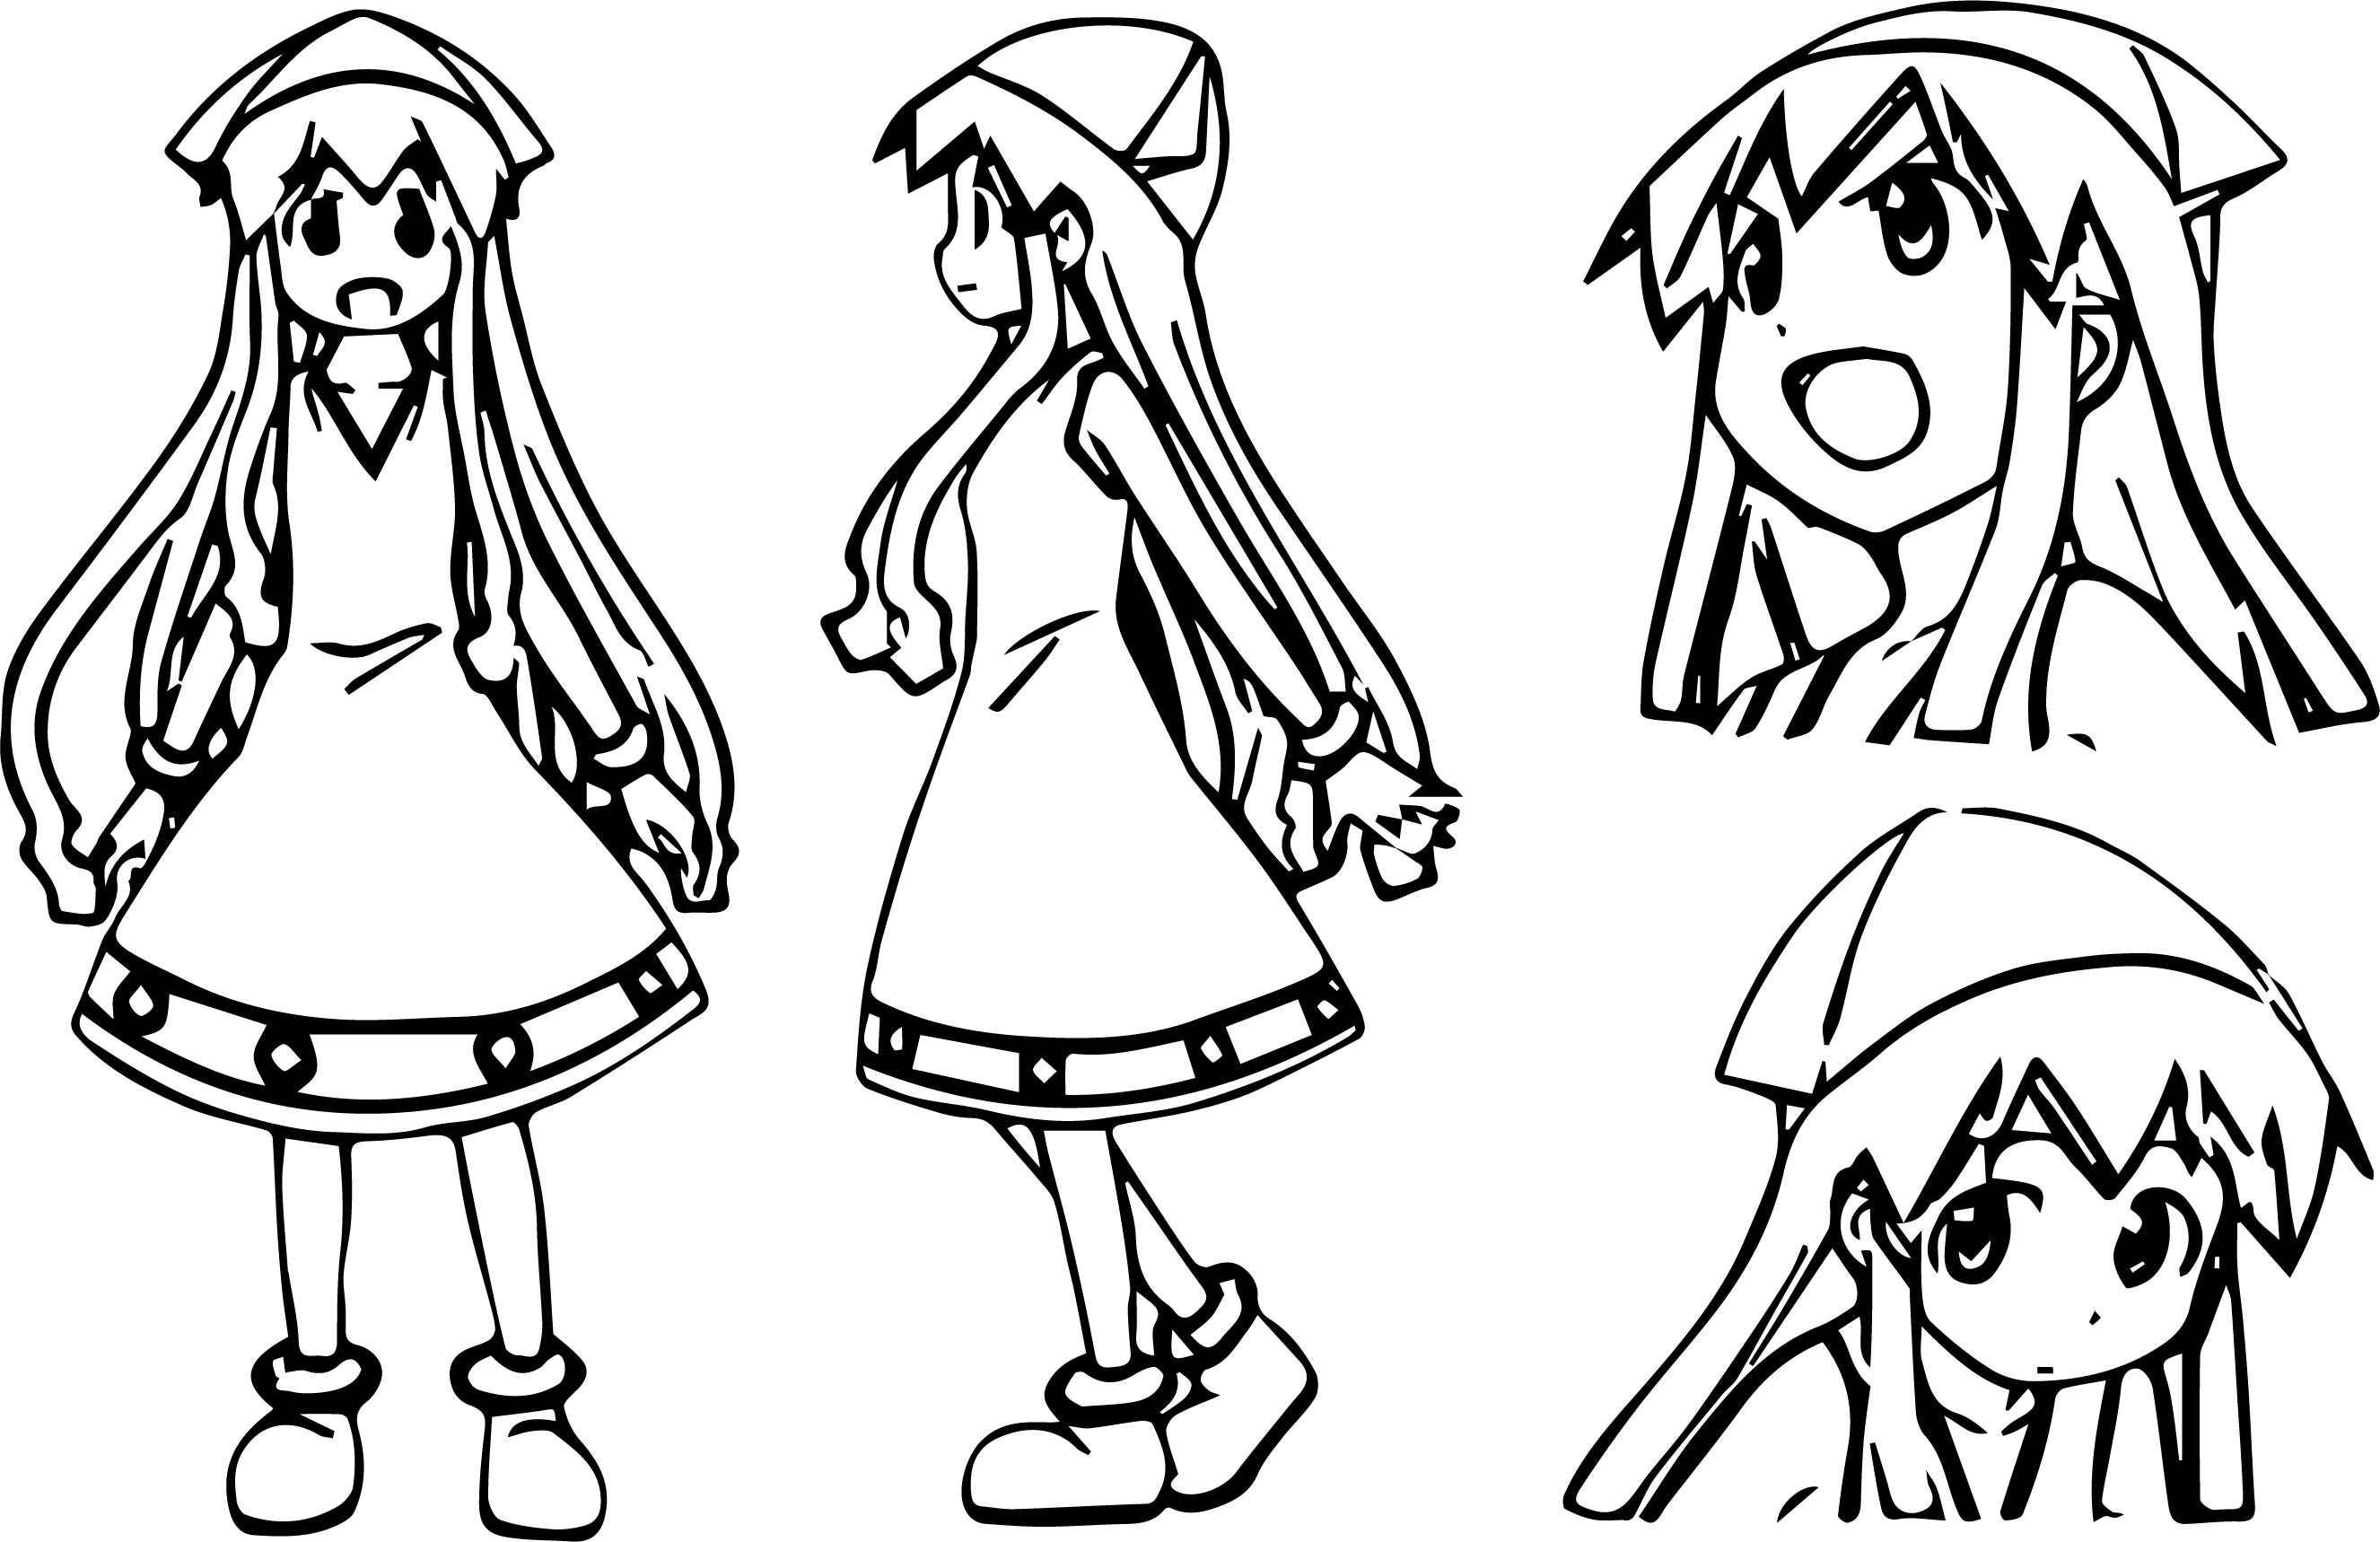 Squid Girl Poses Style Coloring Page